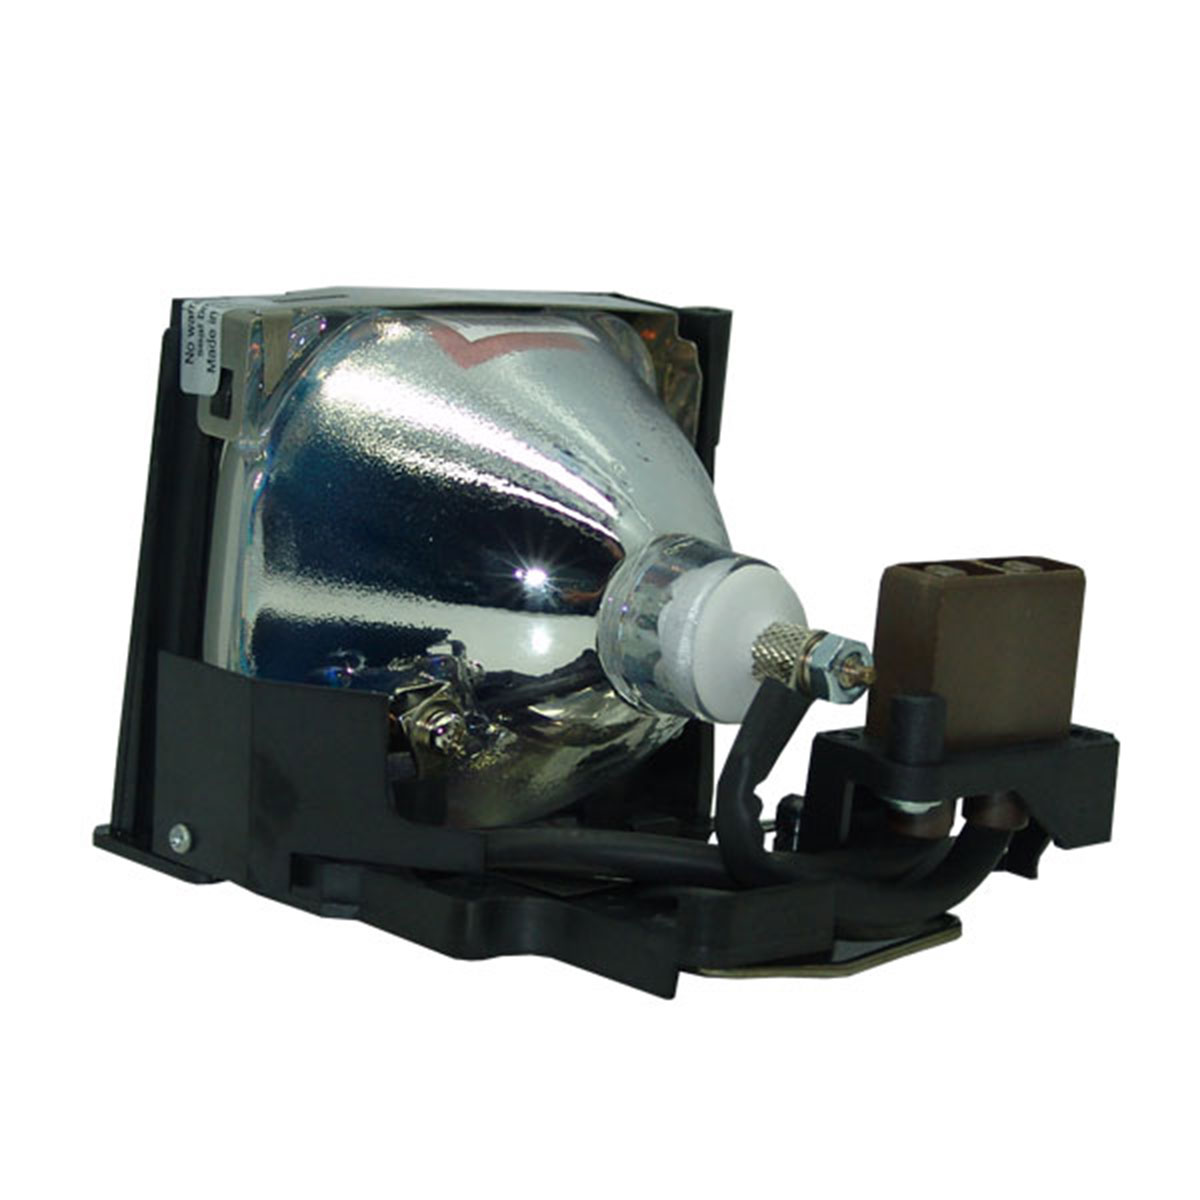 Original Philips Projector Lamp Replacement for Philips LCA3111 (Bulb Only) - image 3 of 5